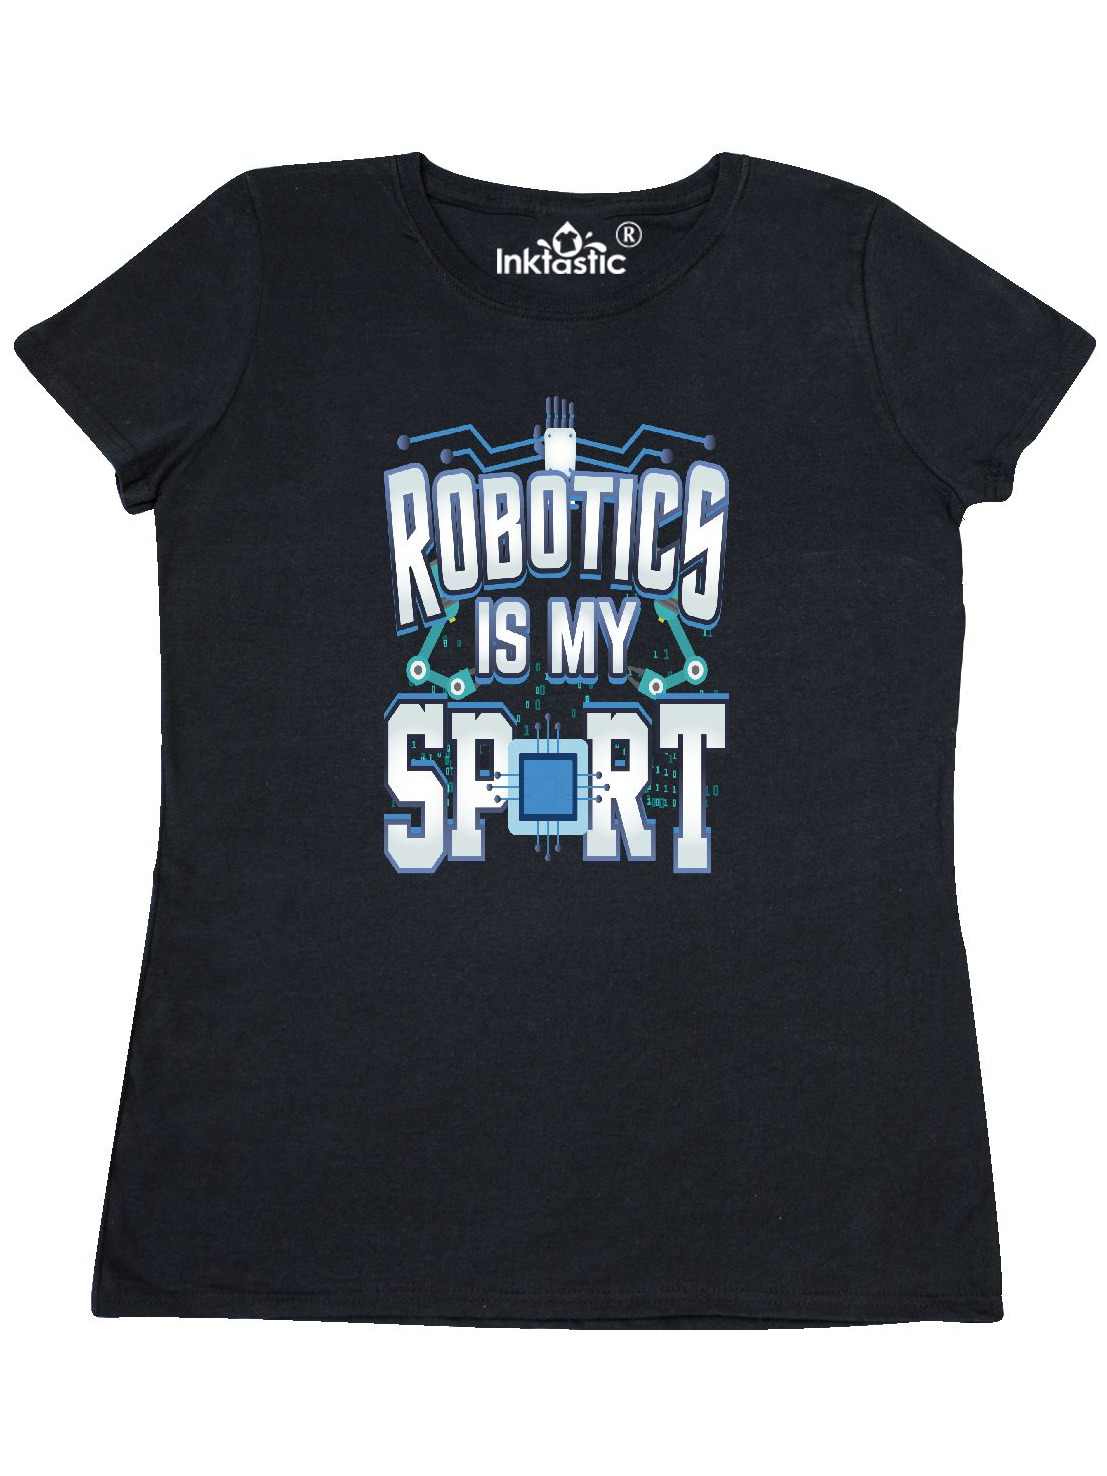 076d36d5 Inktastic - Robotics is my Sport Funny Engineering Women's T-Shirt -  Walmart.com